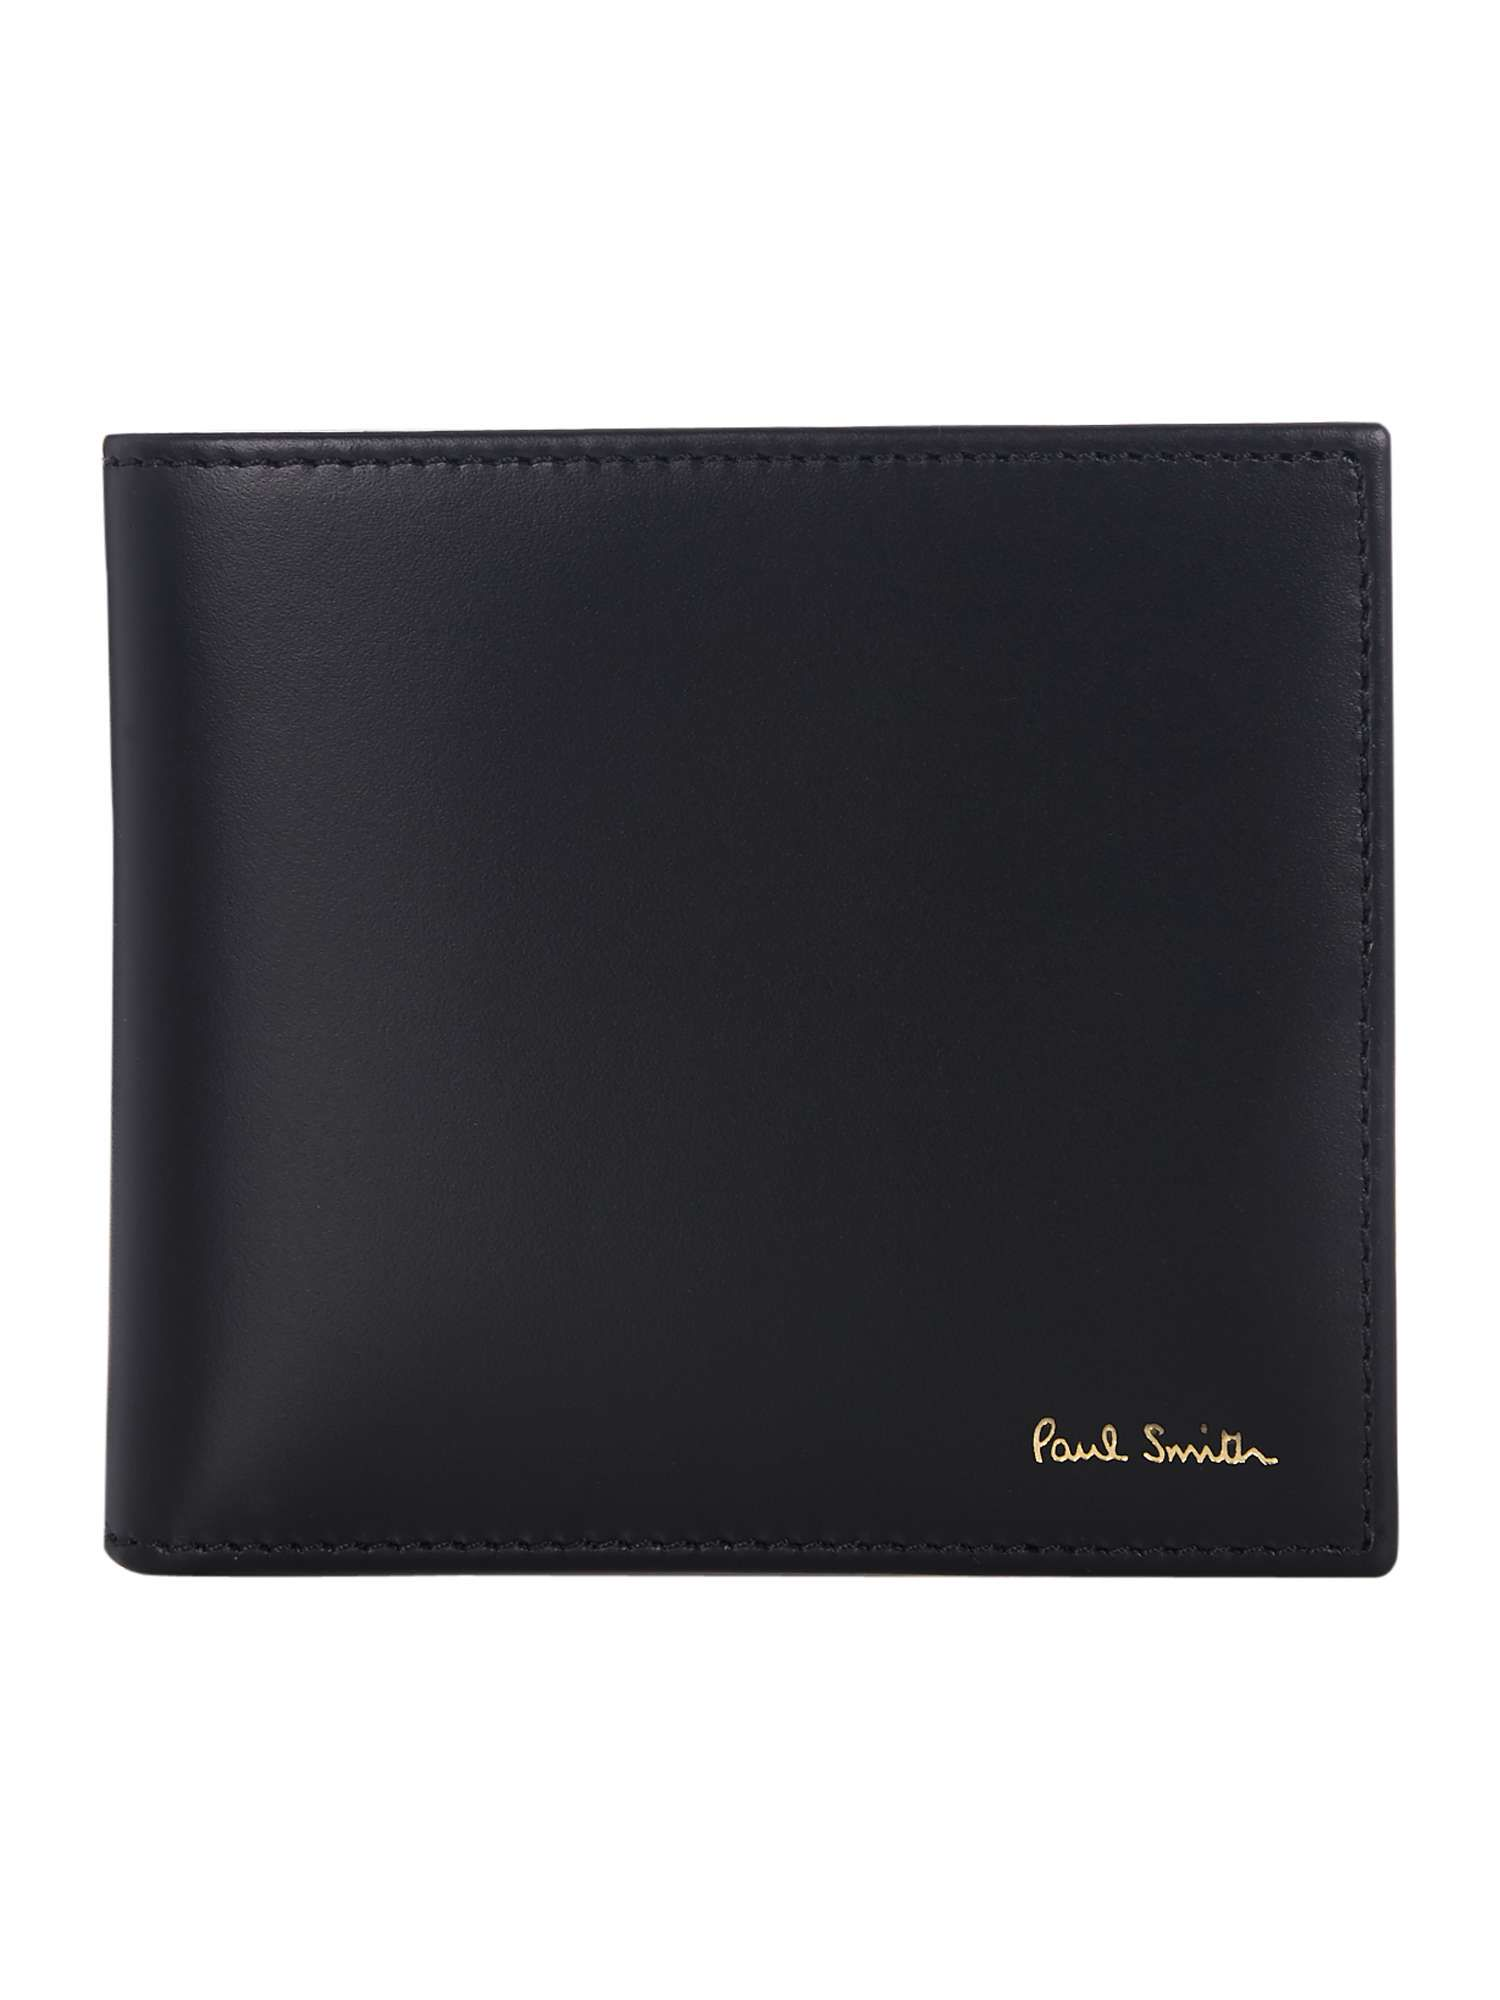 Wallet PAUL SMITH